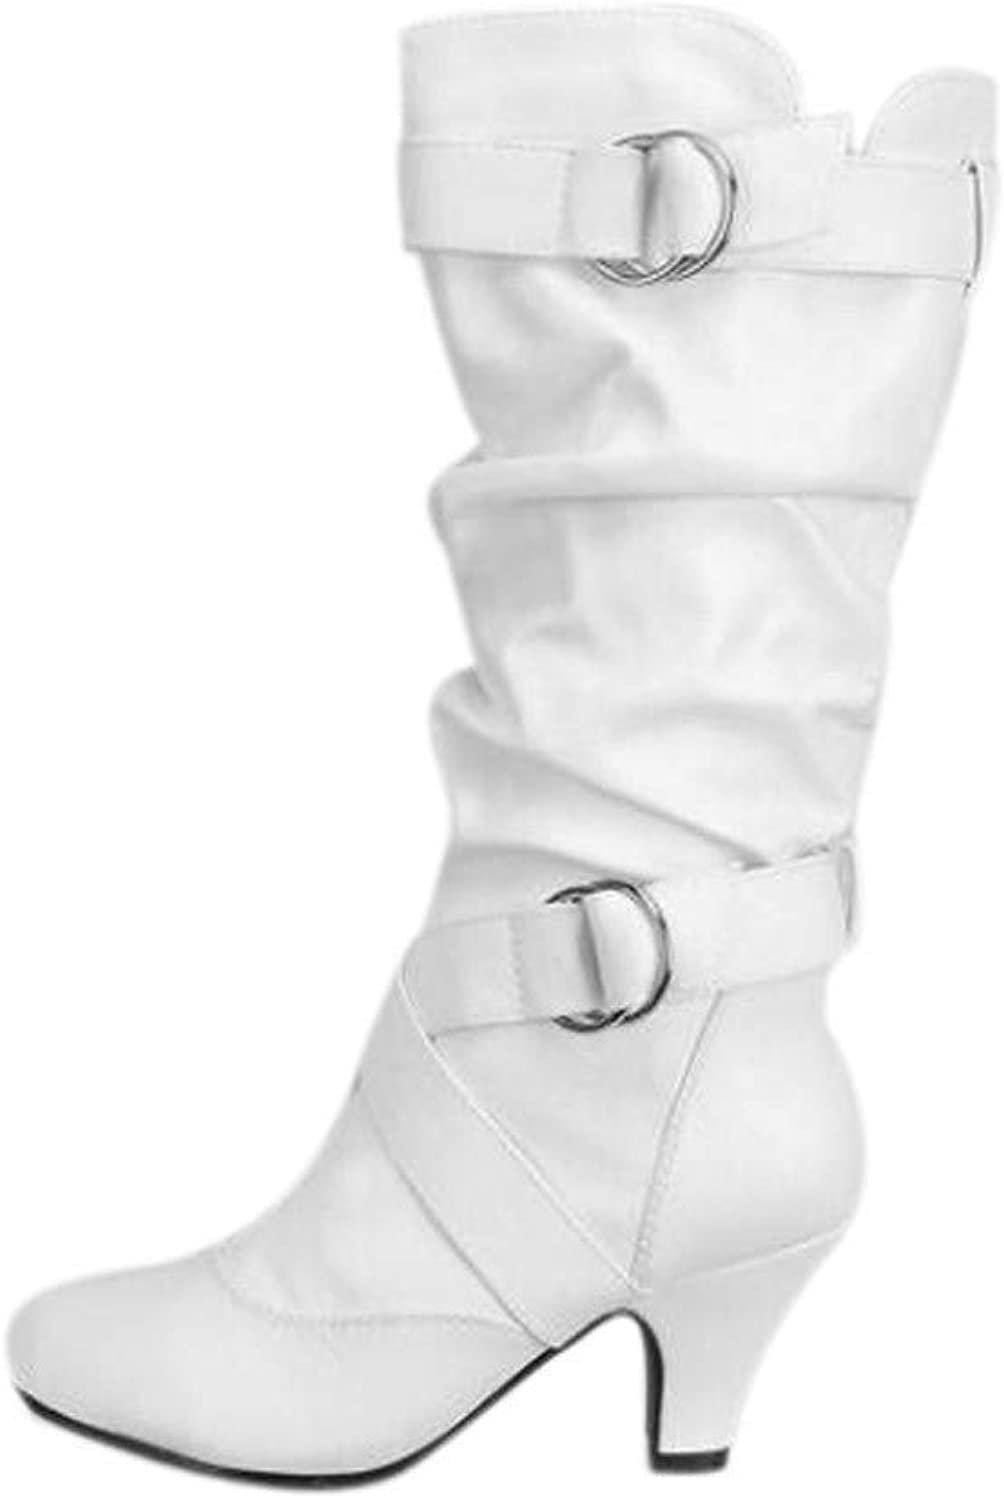 SUNNY Store Women's Thigh High Stretch Boot - Trendy High Heel shoes - Sexy Over The Knee Pullon Boot - Comfortable Heel